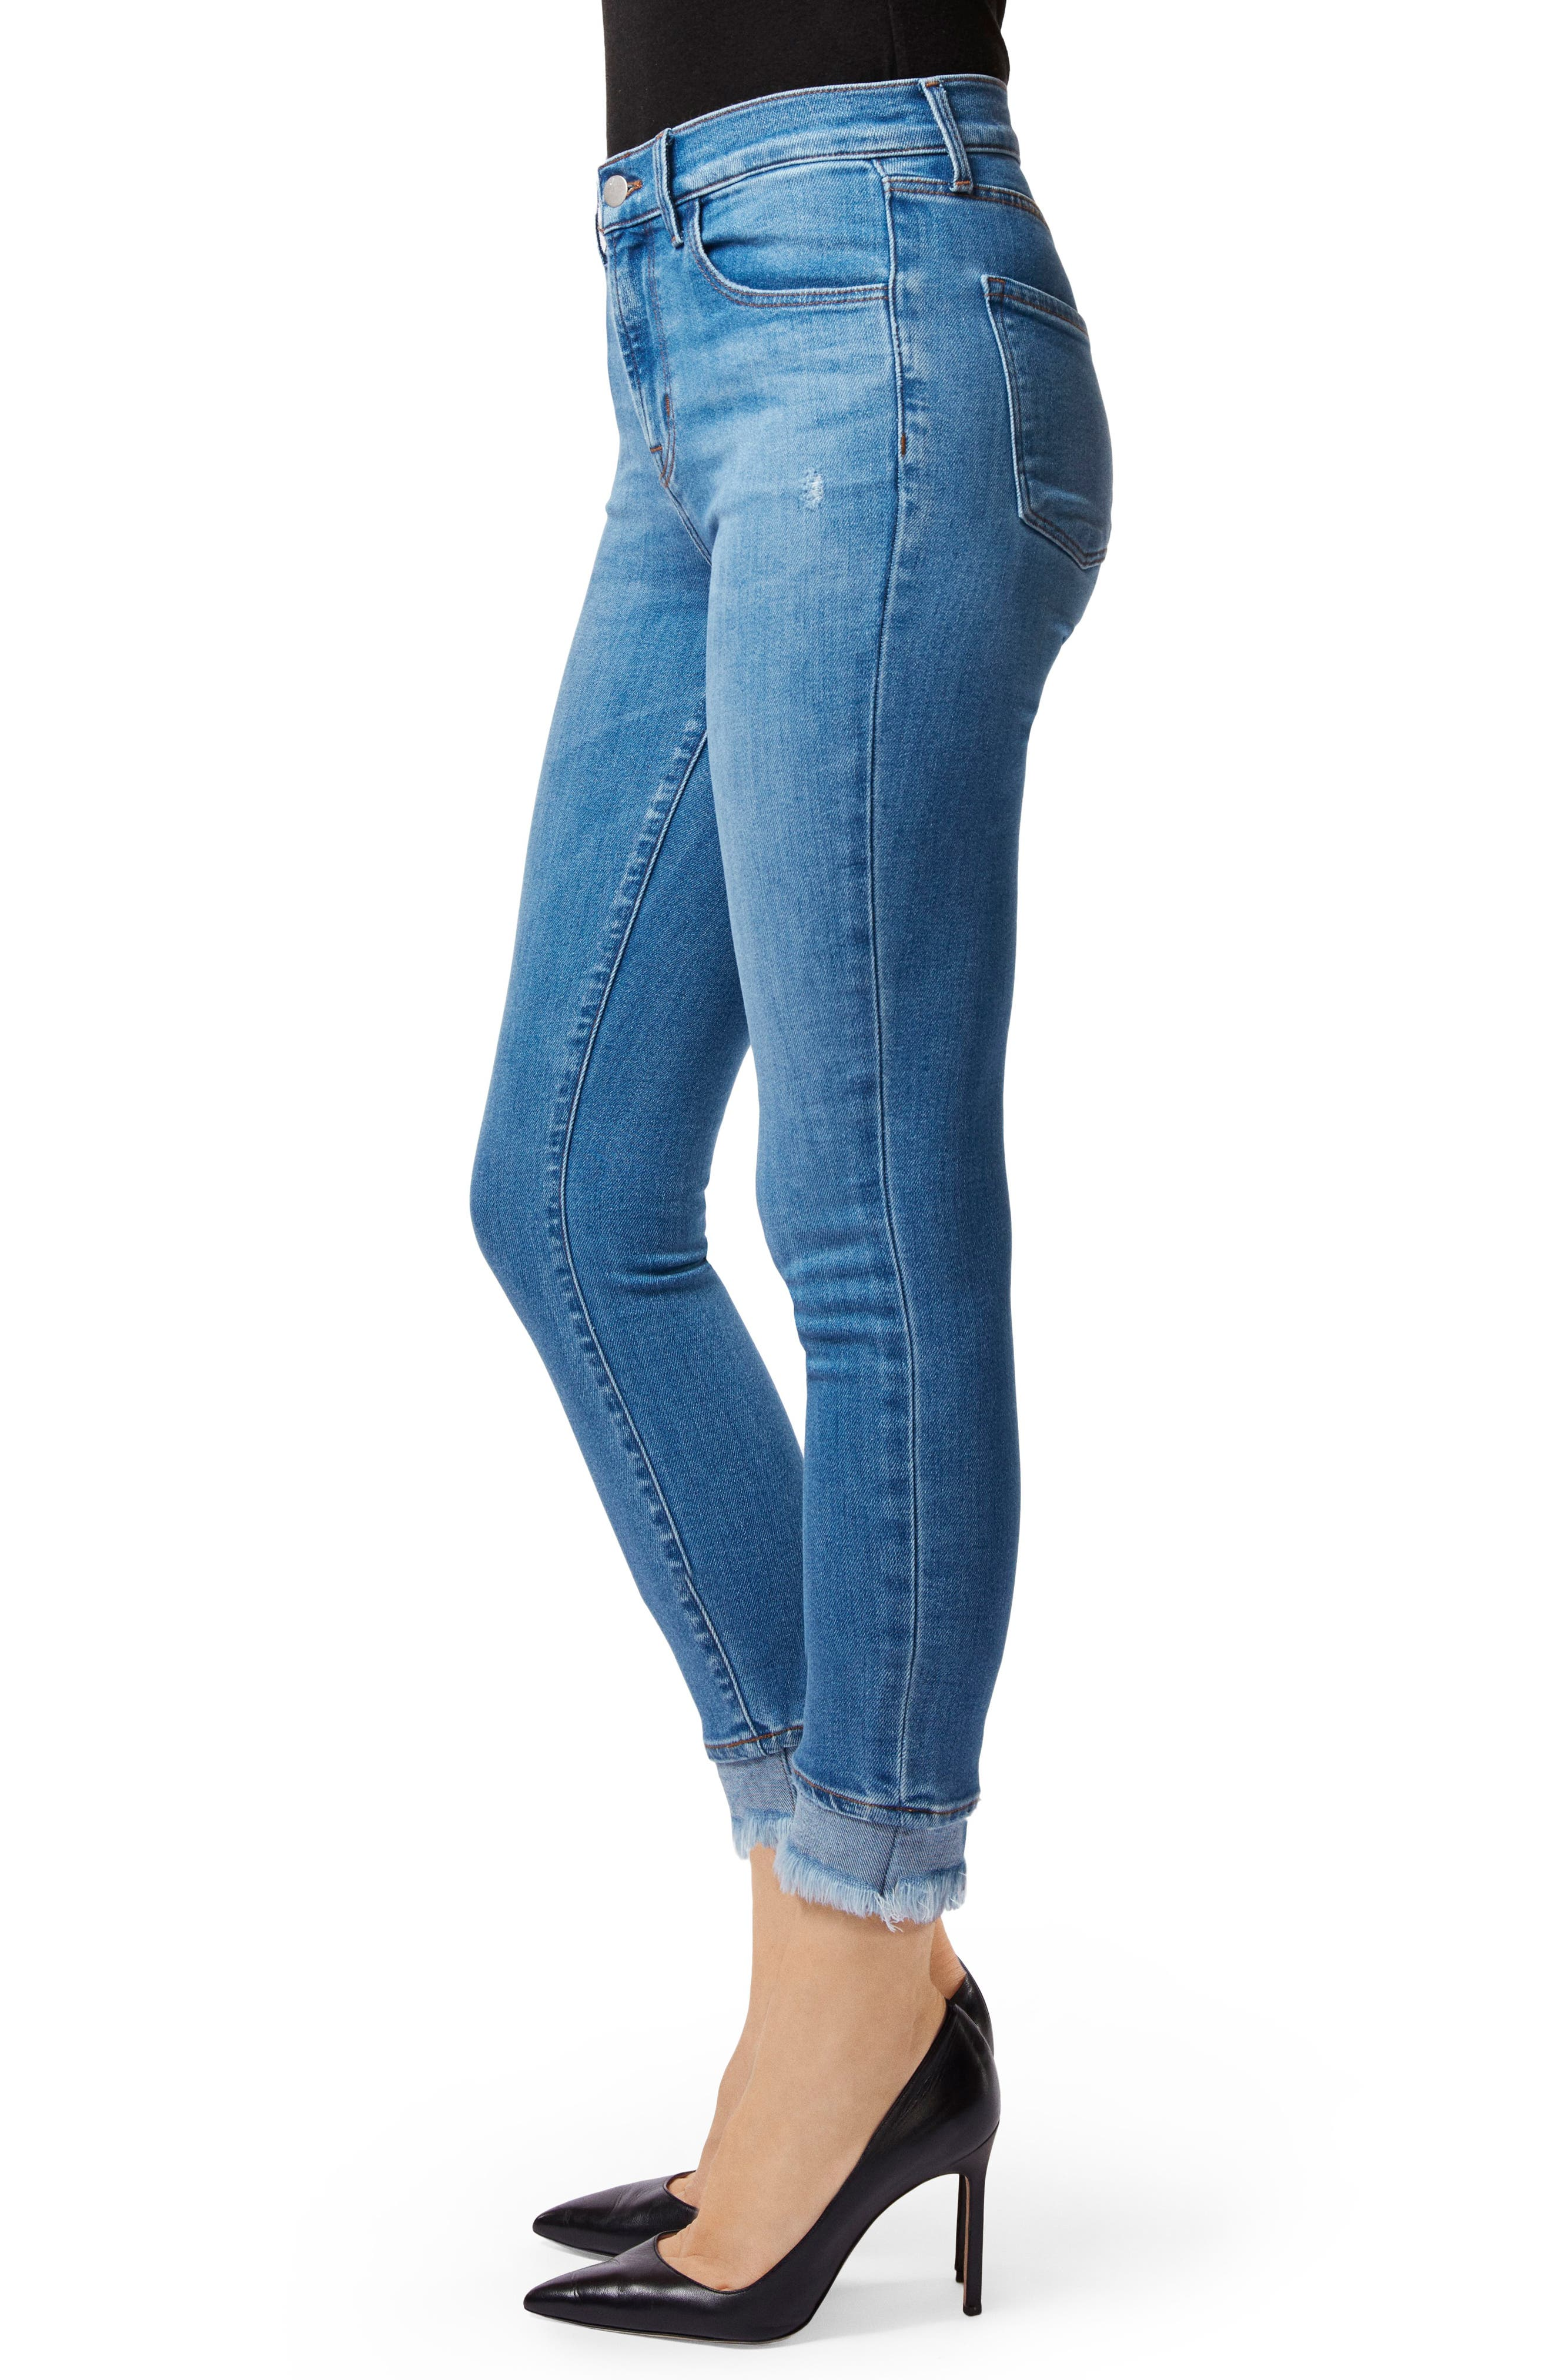 Alana Frayed High Waist Ankle Skinny Jeans,                             Alternate thumbnail 3, color,                             453